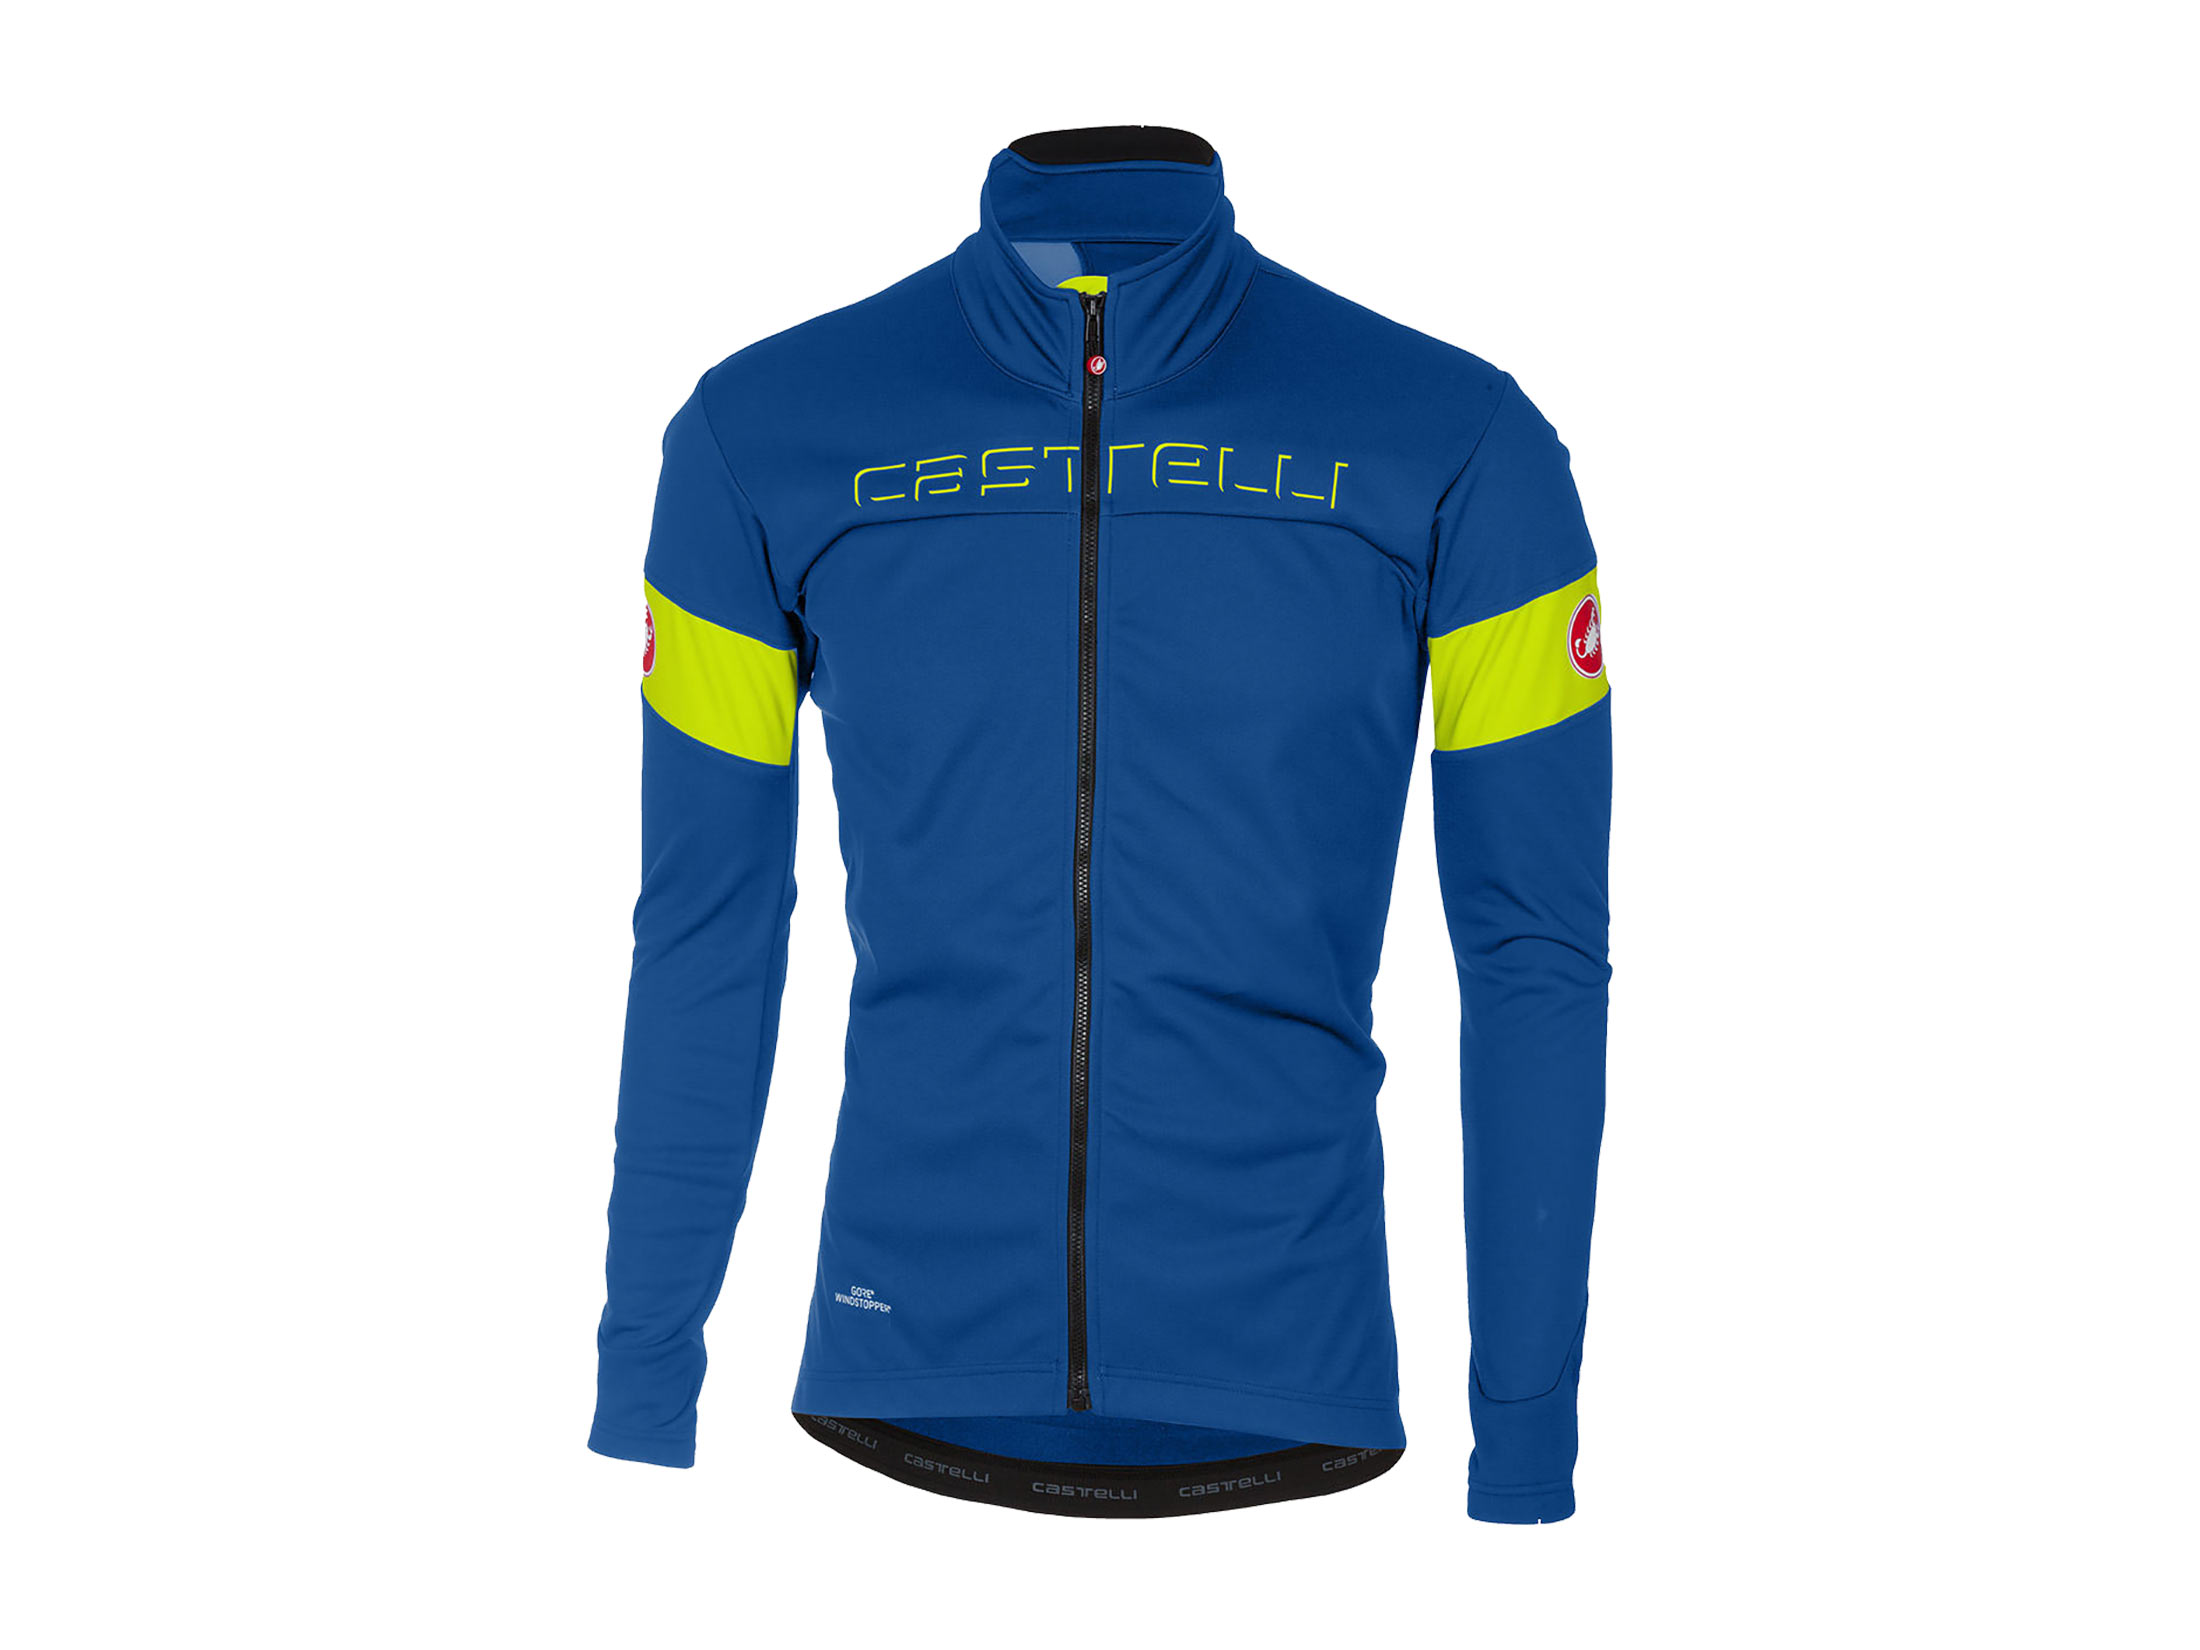 Castelli Transition Jacket - Ceramic Blue / Yellow Fluo